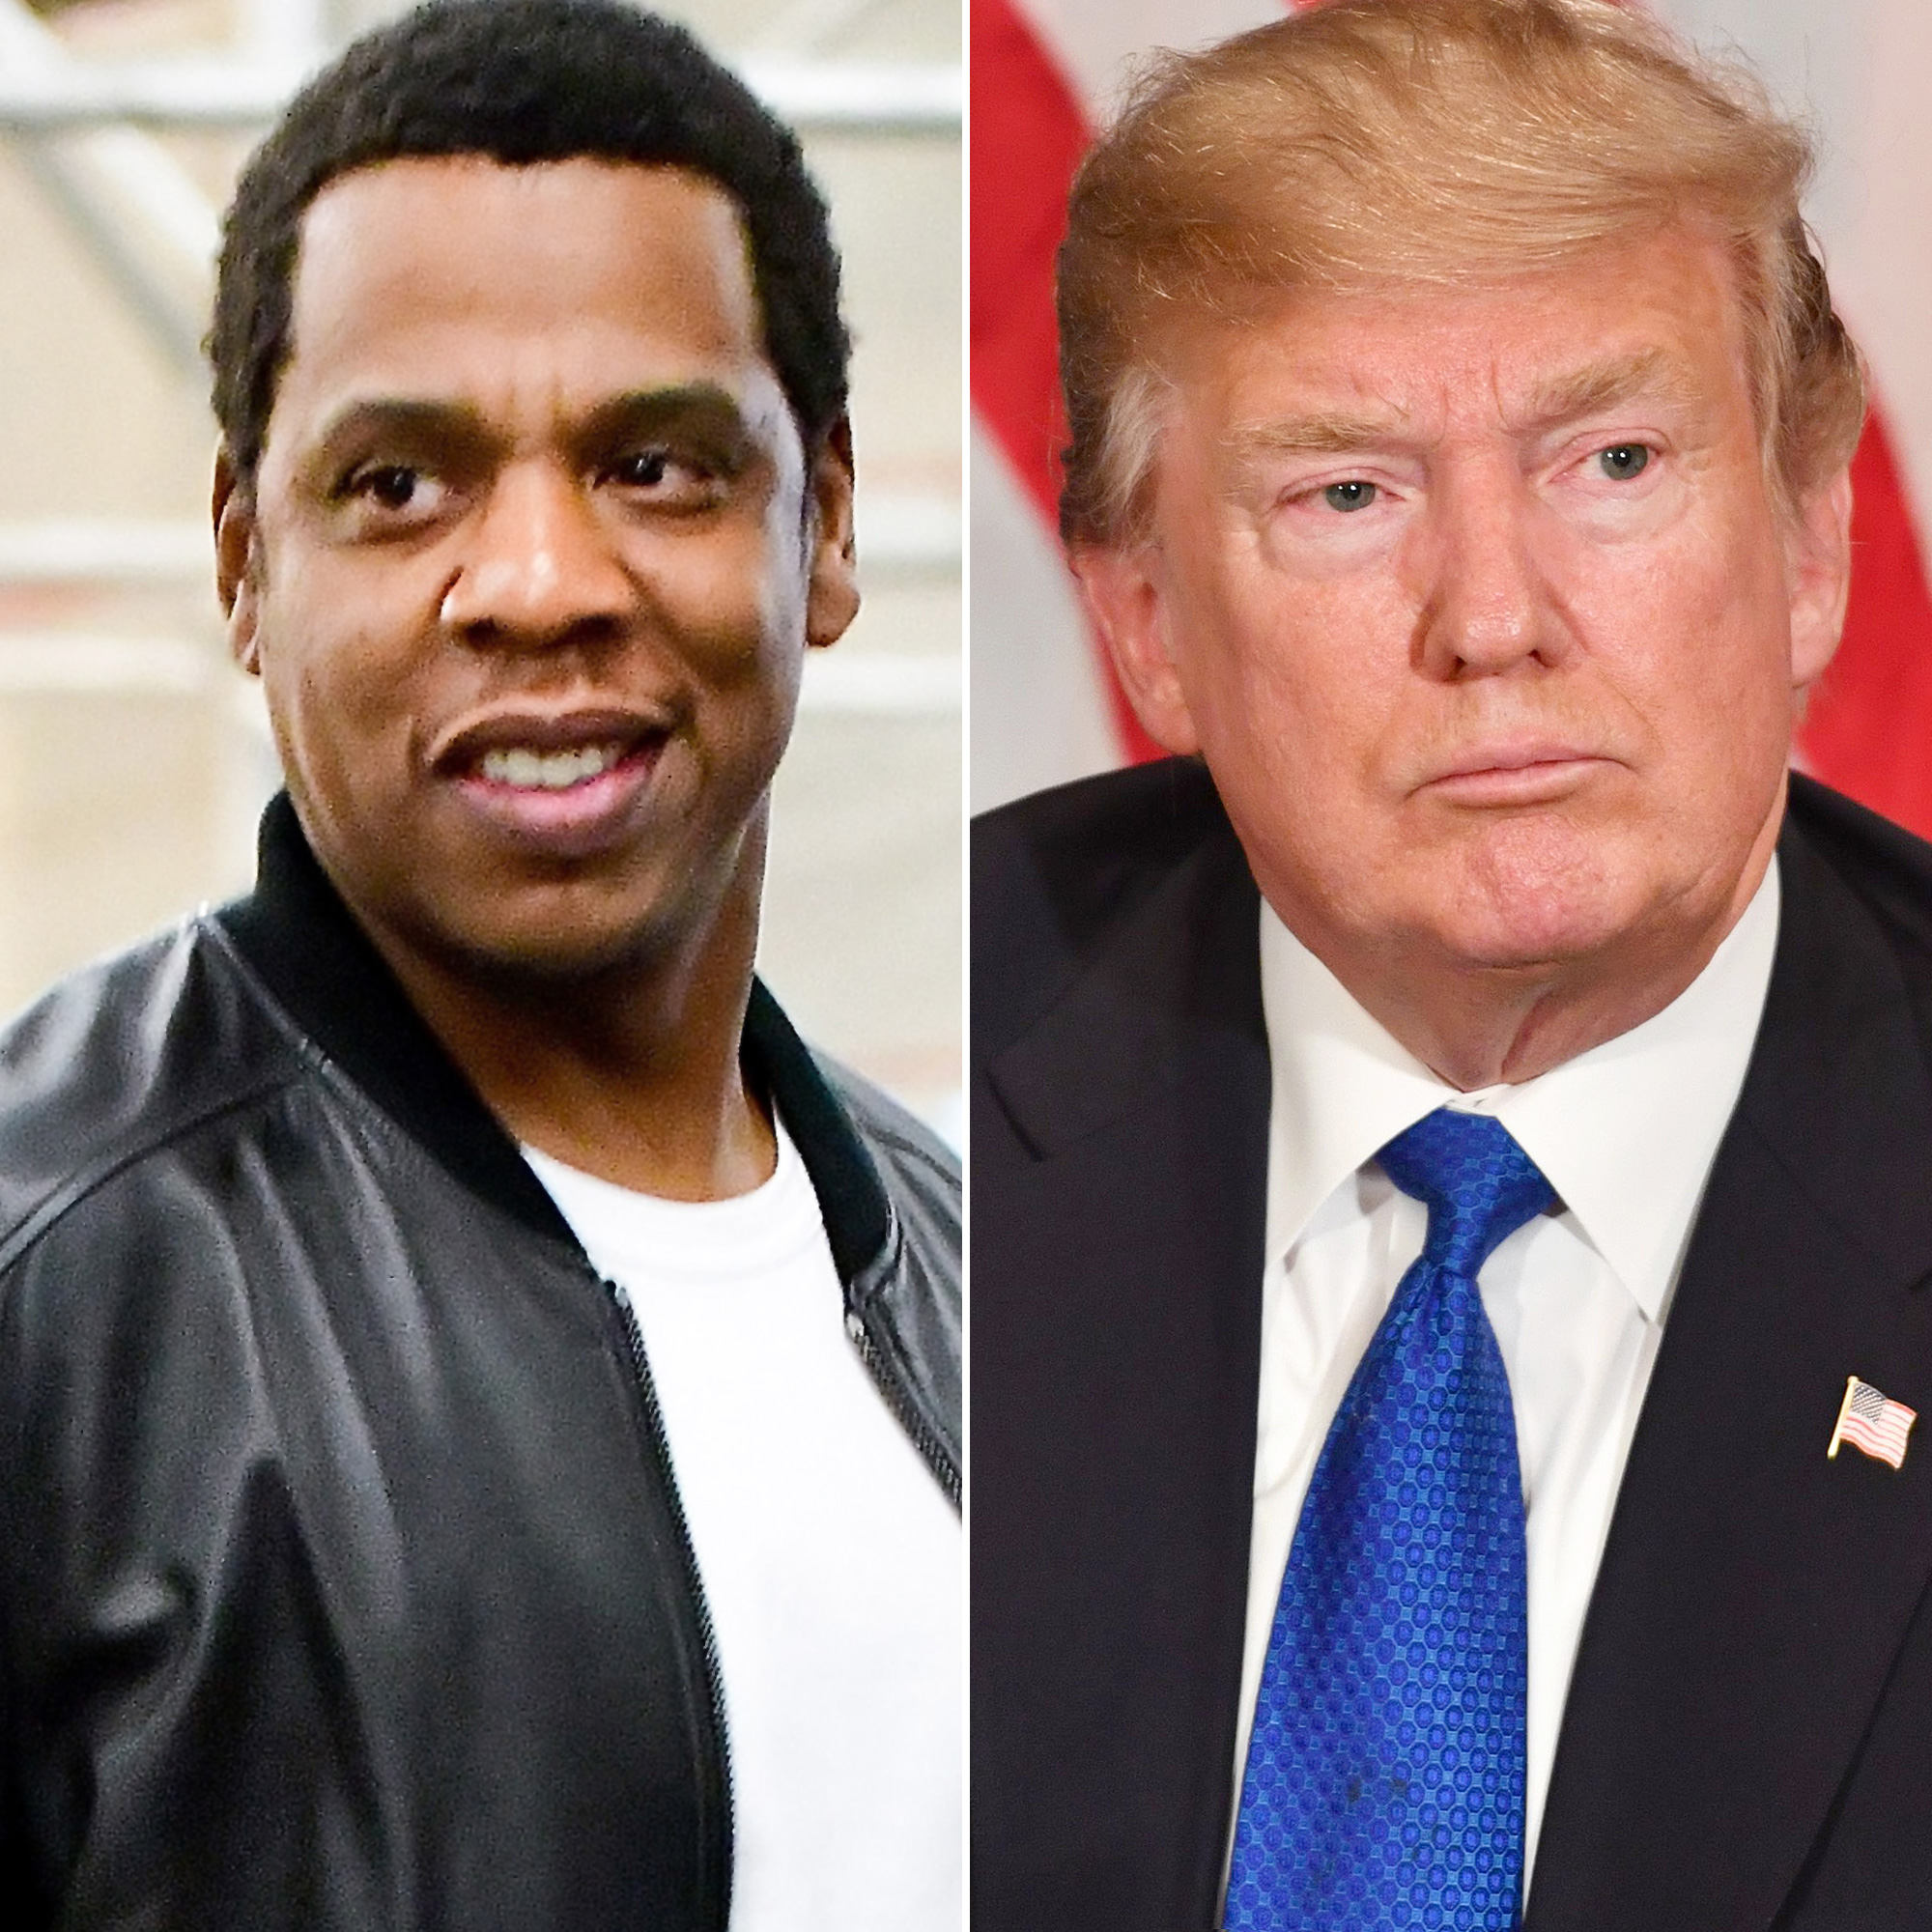 Trump takes aim at Jay-Z on jobless rate for black Americans